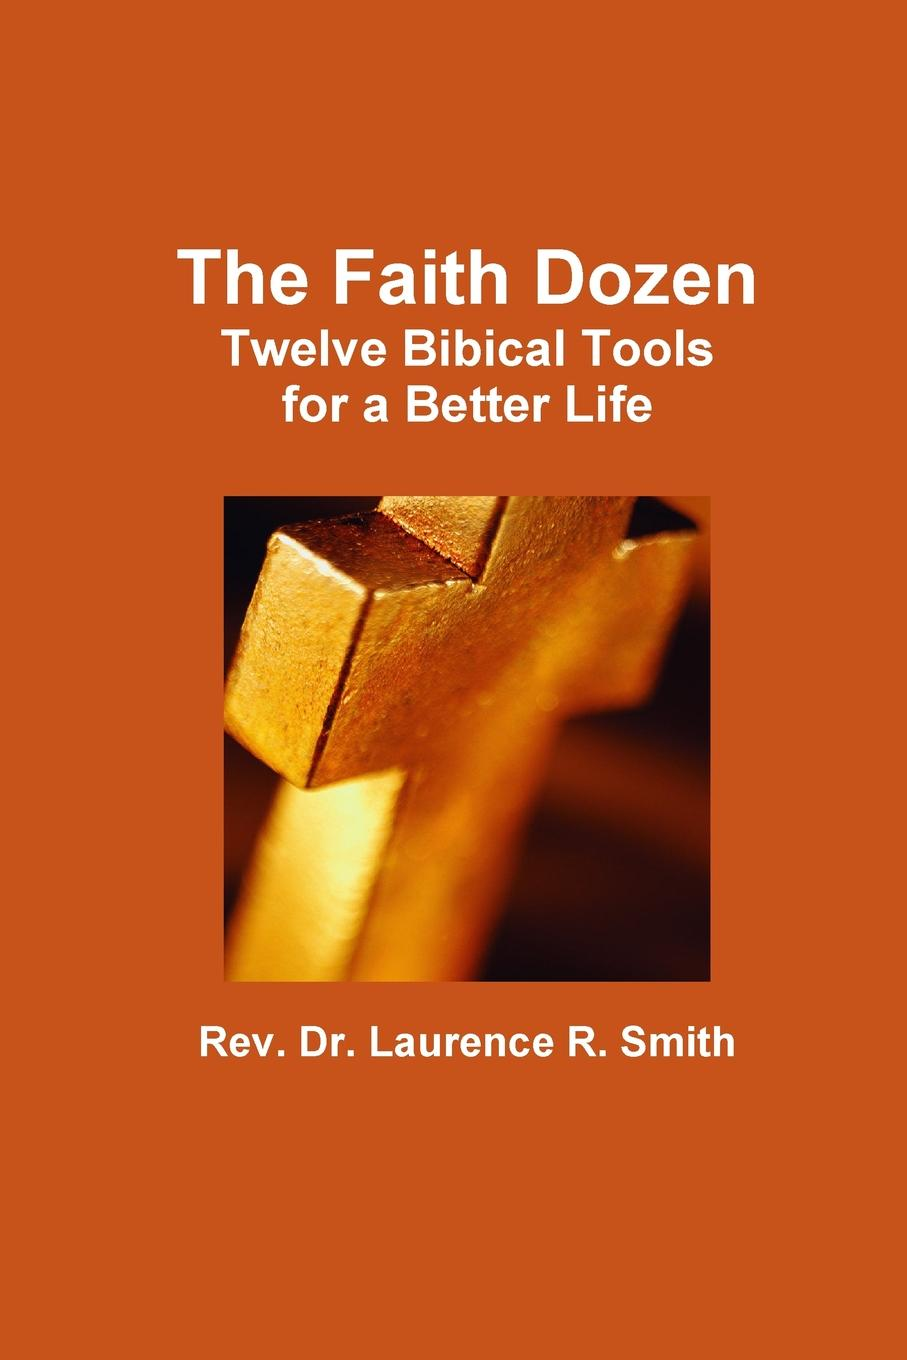 Rev. Dr. Laurence R. Smith The Faith Dozen цена